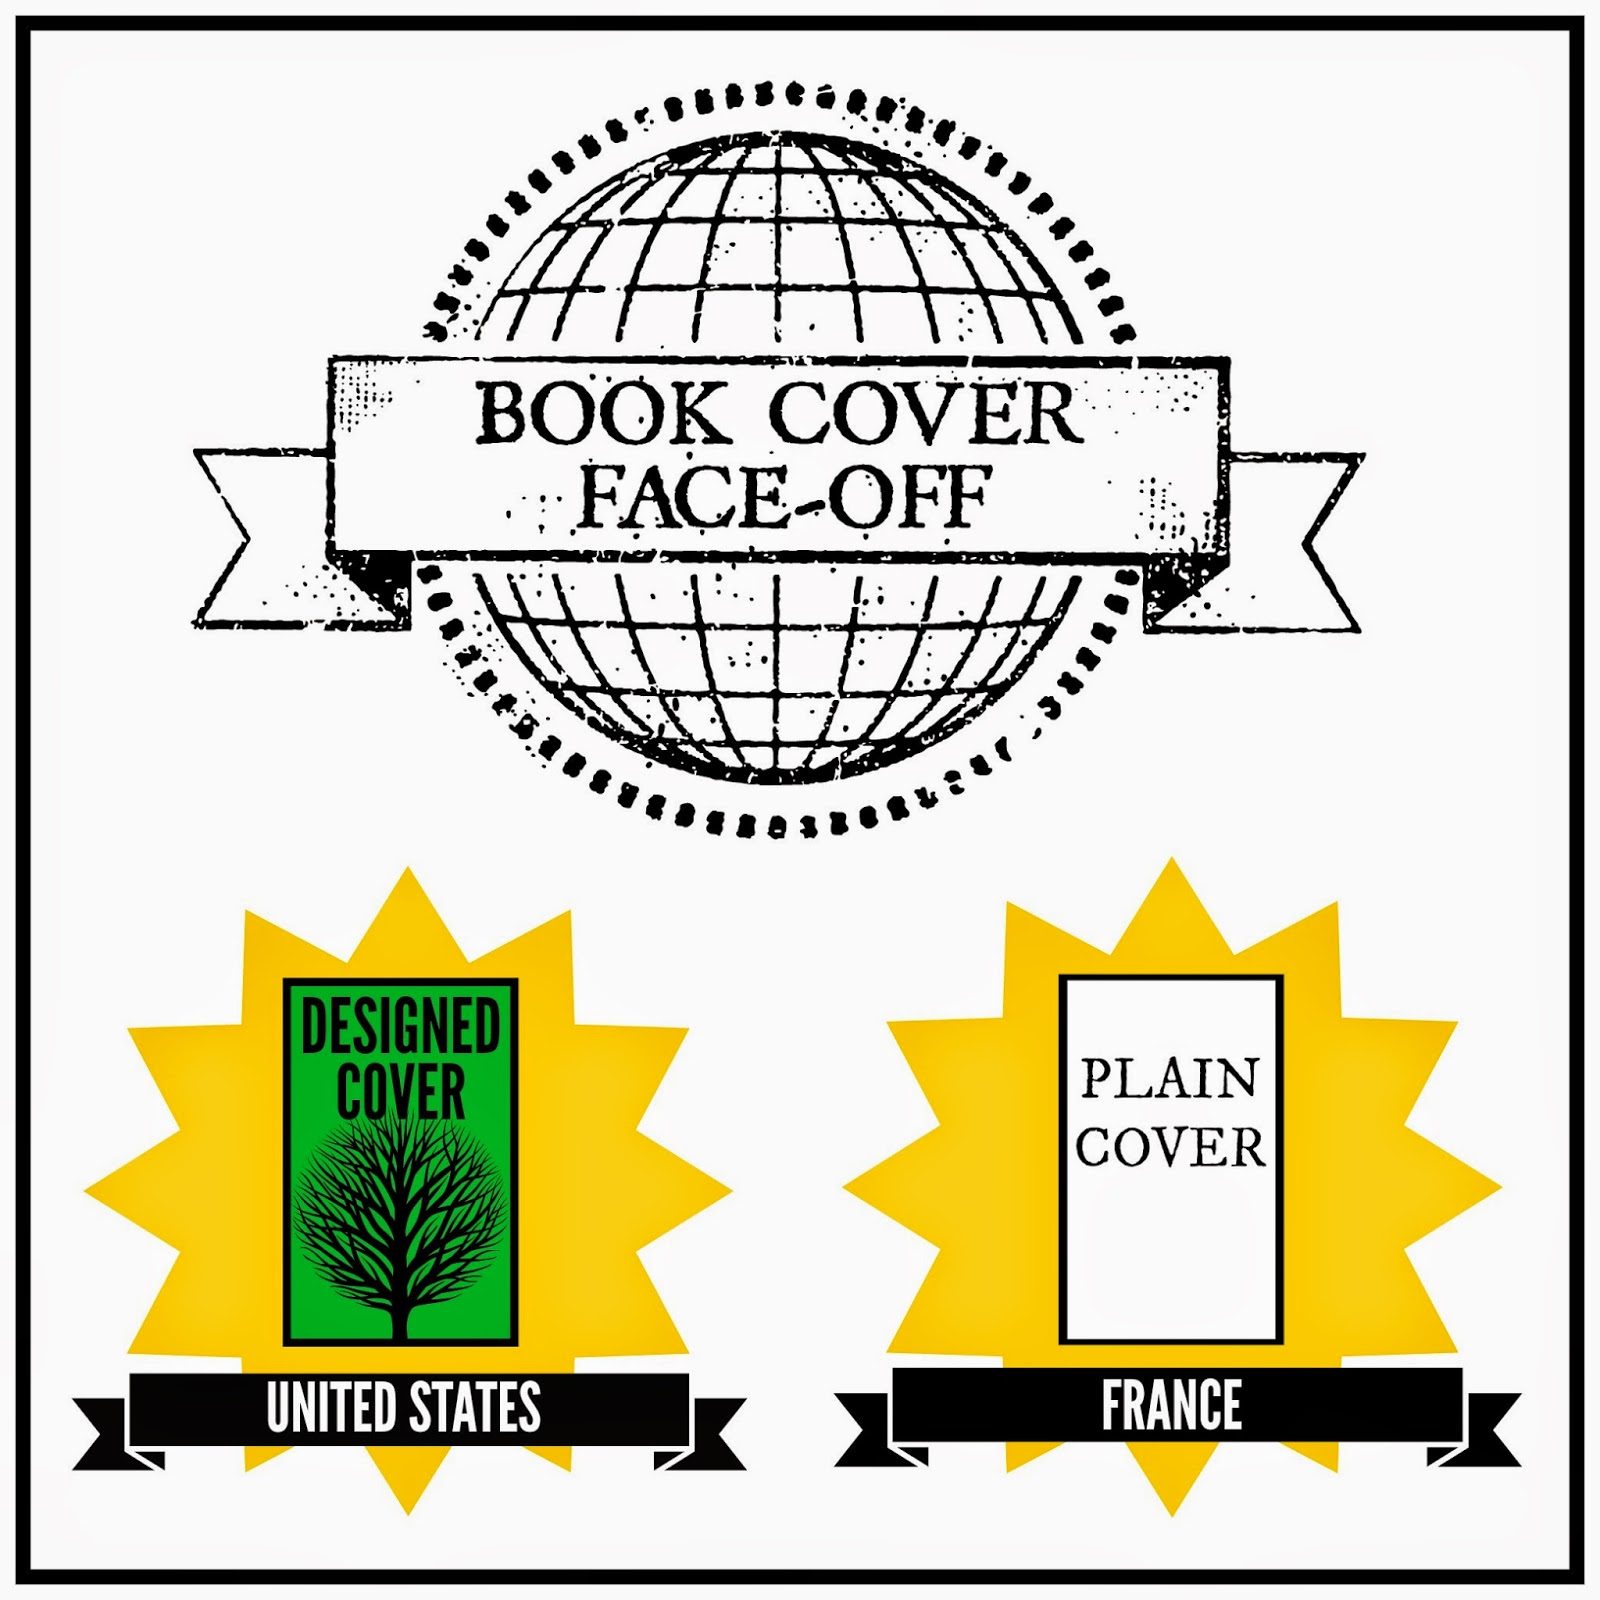 Book Cover Face-Off: United States vs. France